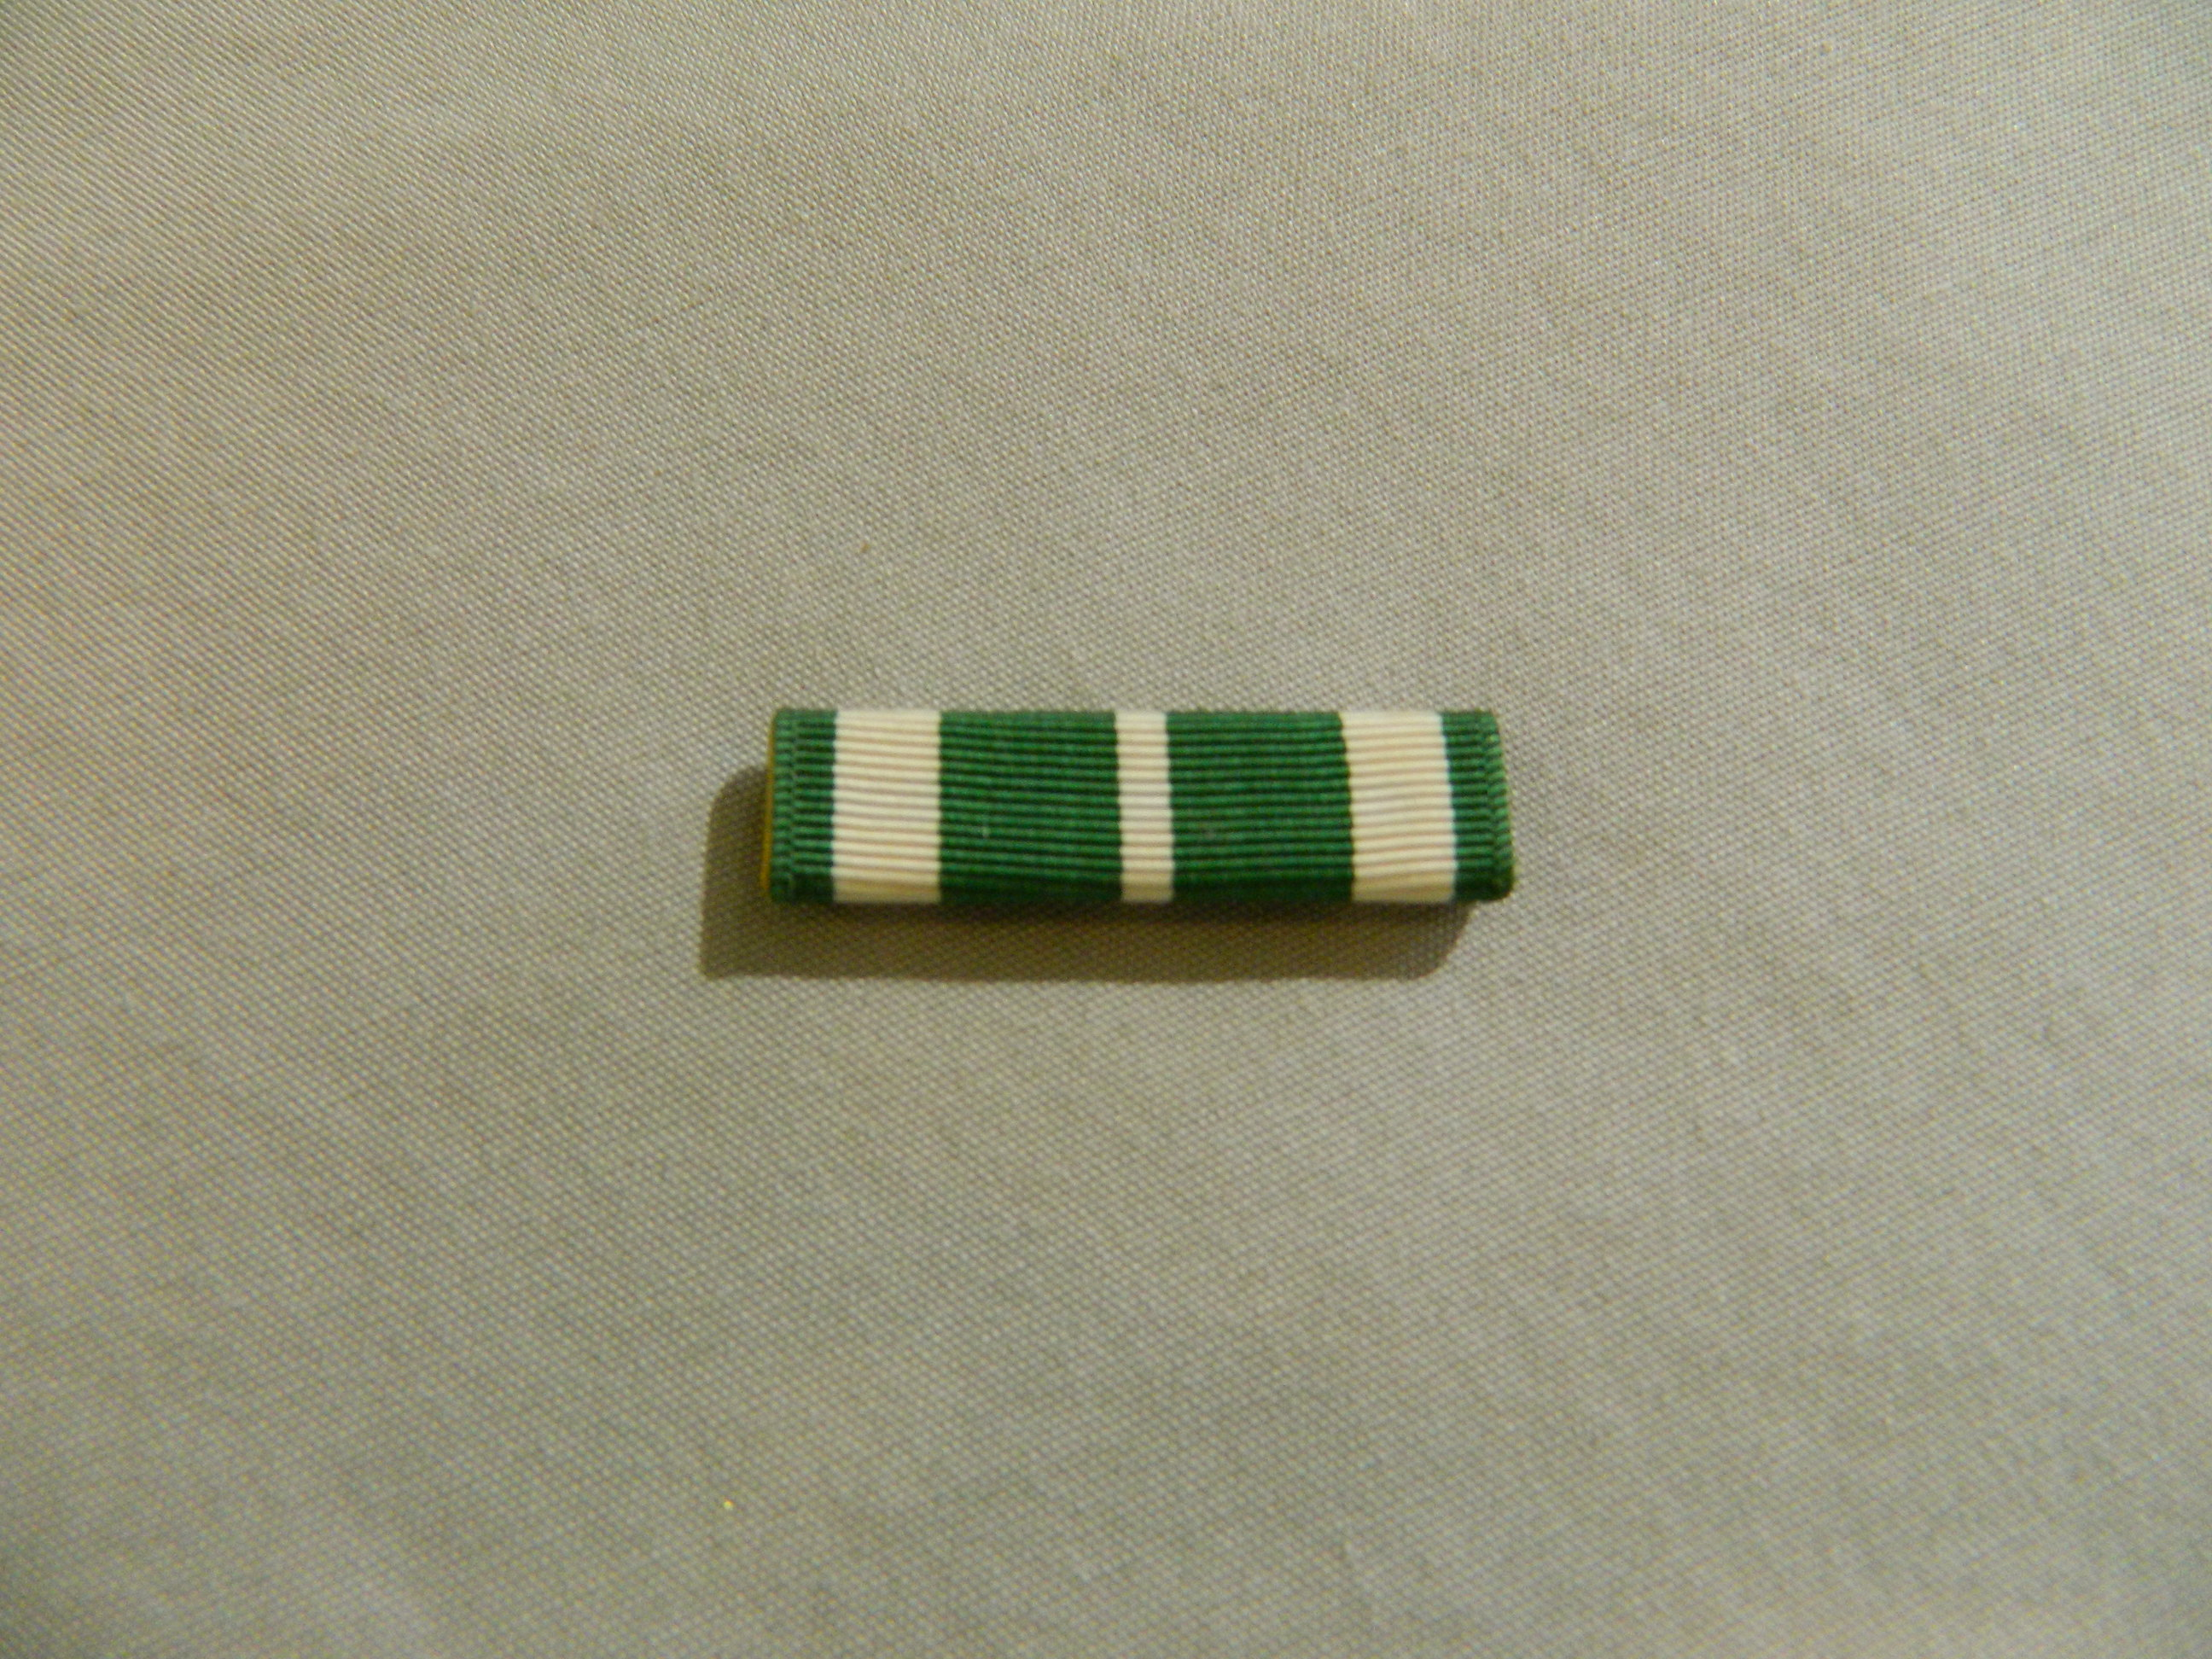 Ribbon: Coast Guard Commendation Medal